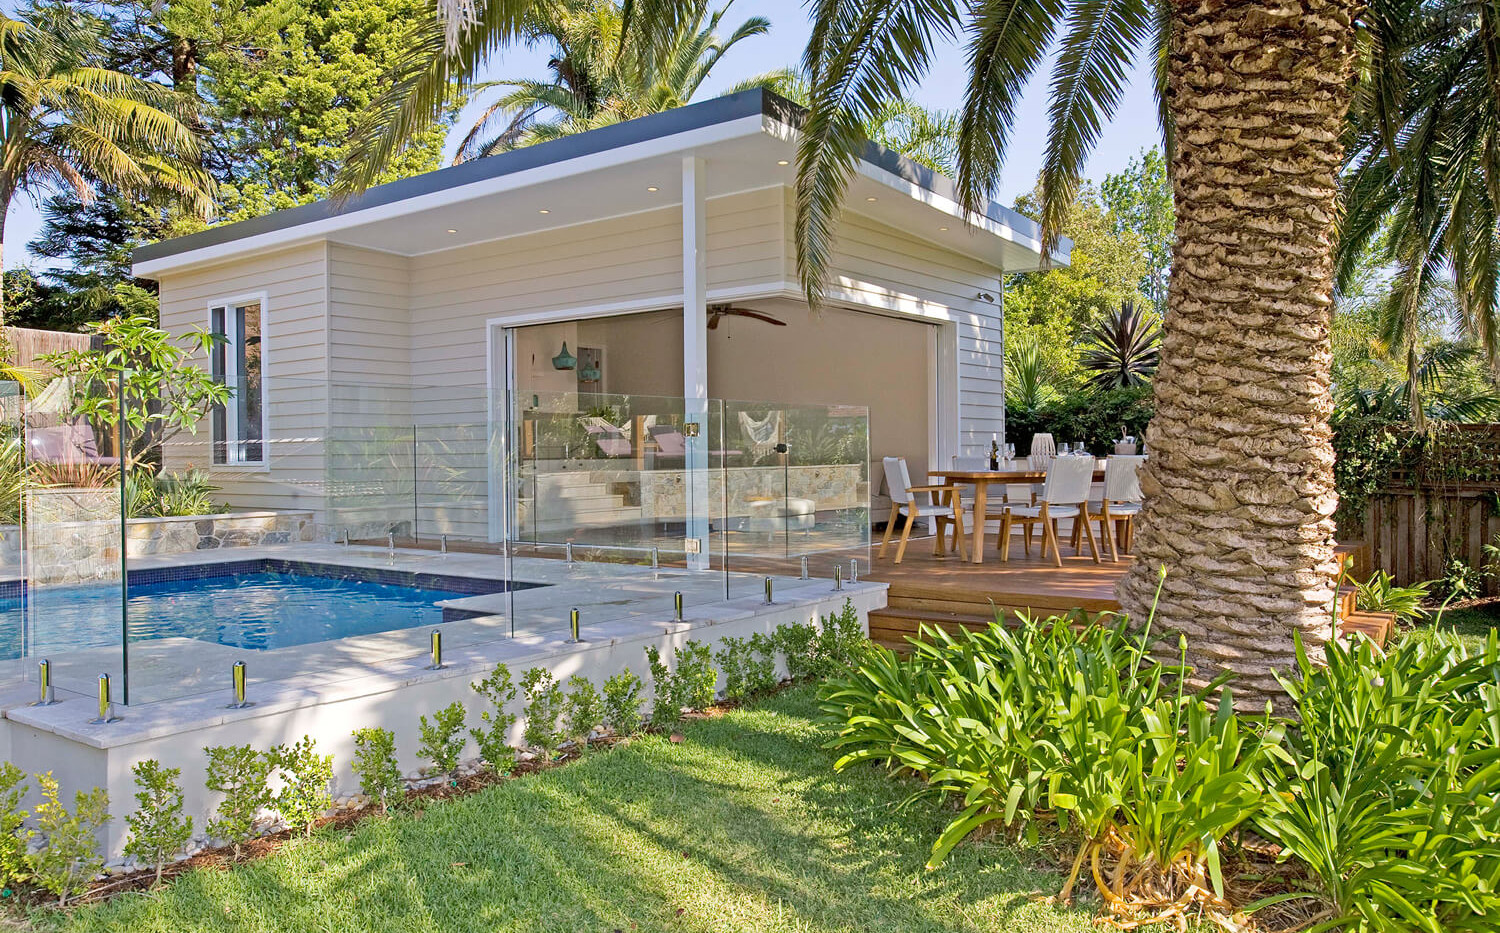 Balgowlah Heights Cabana and Pool - residential courtyard designs